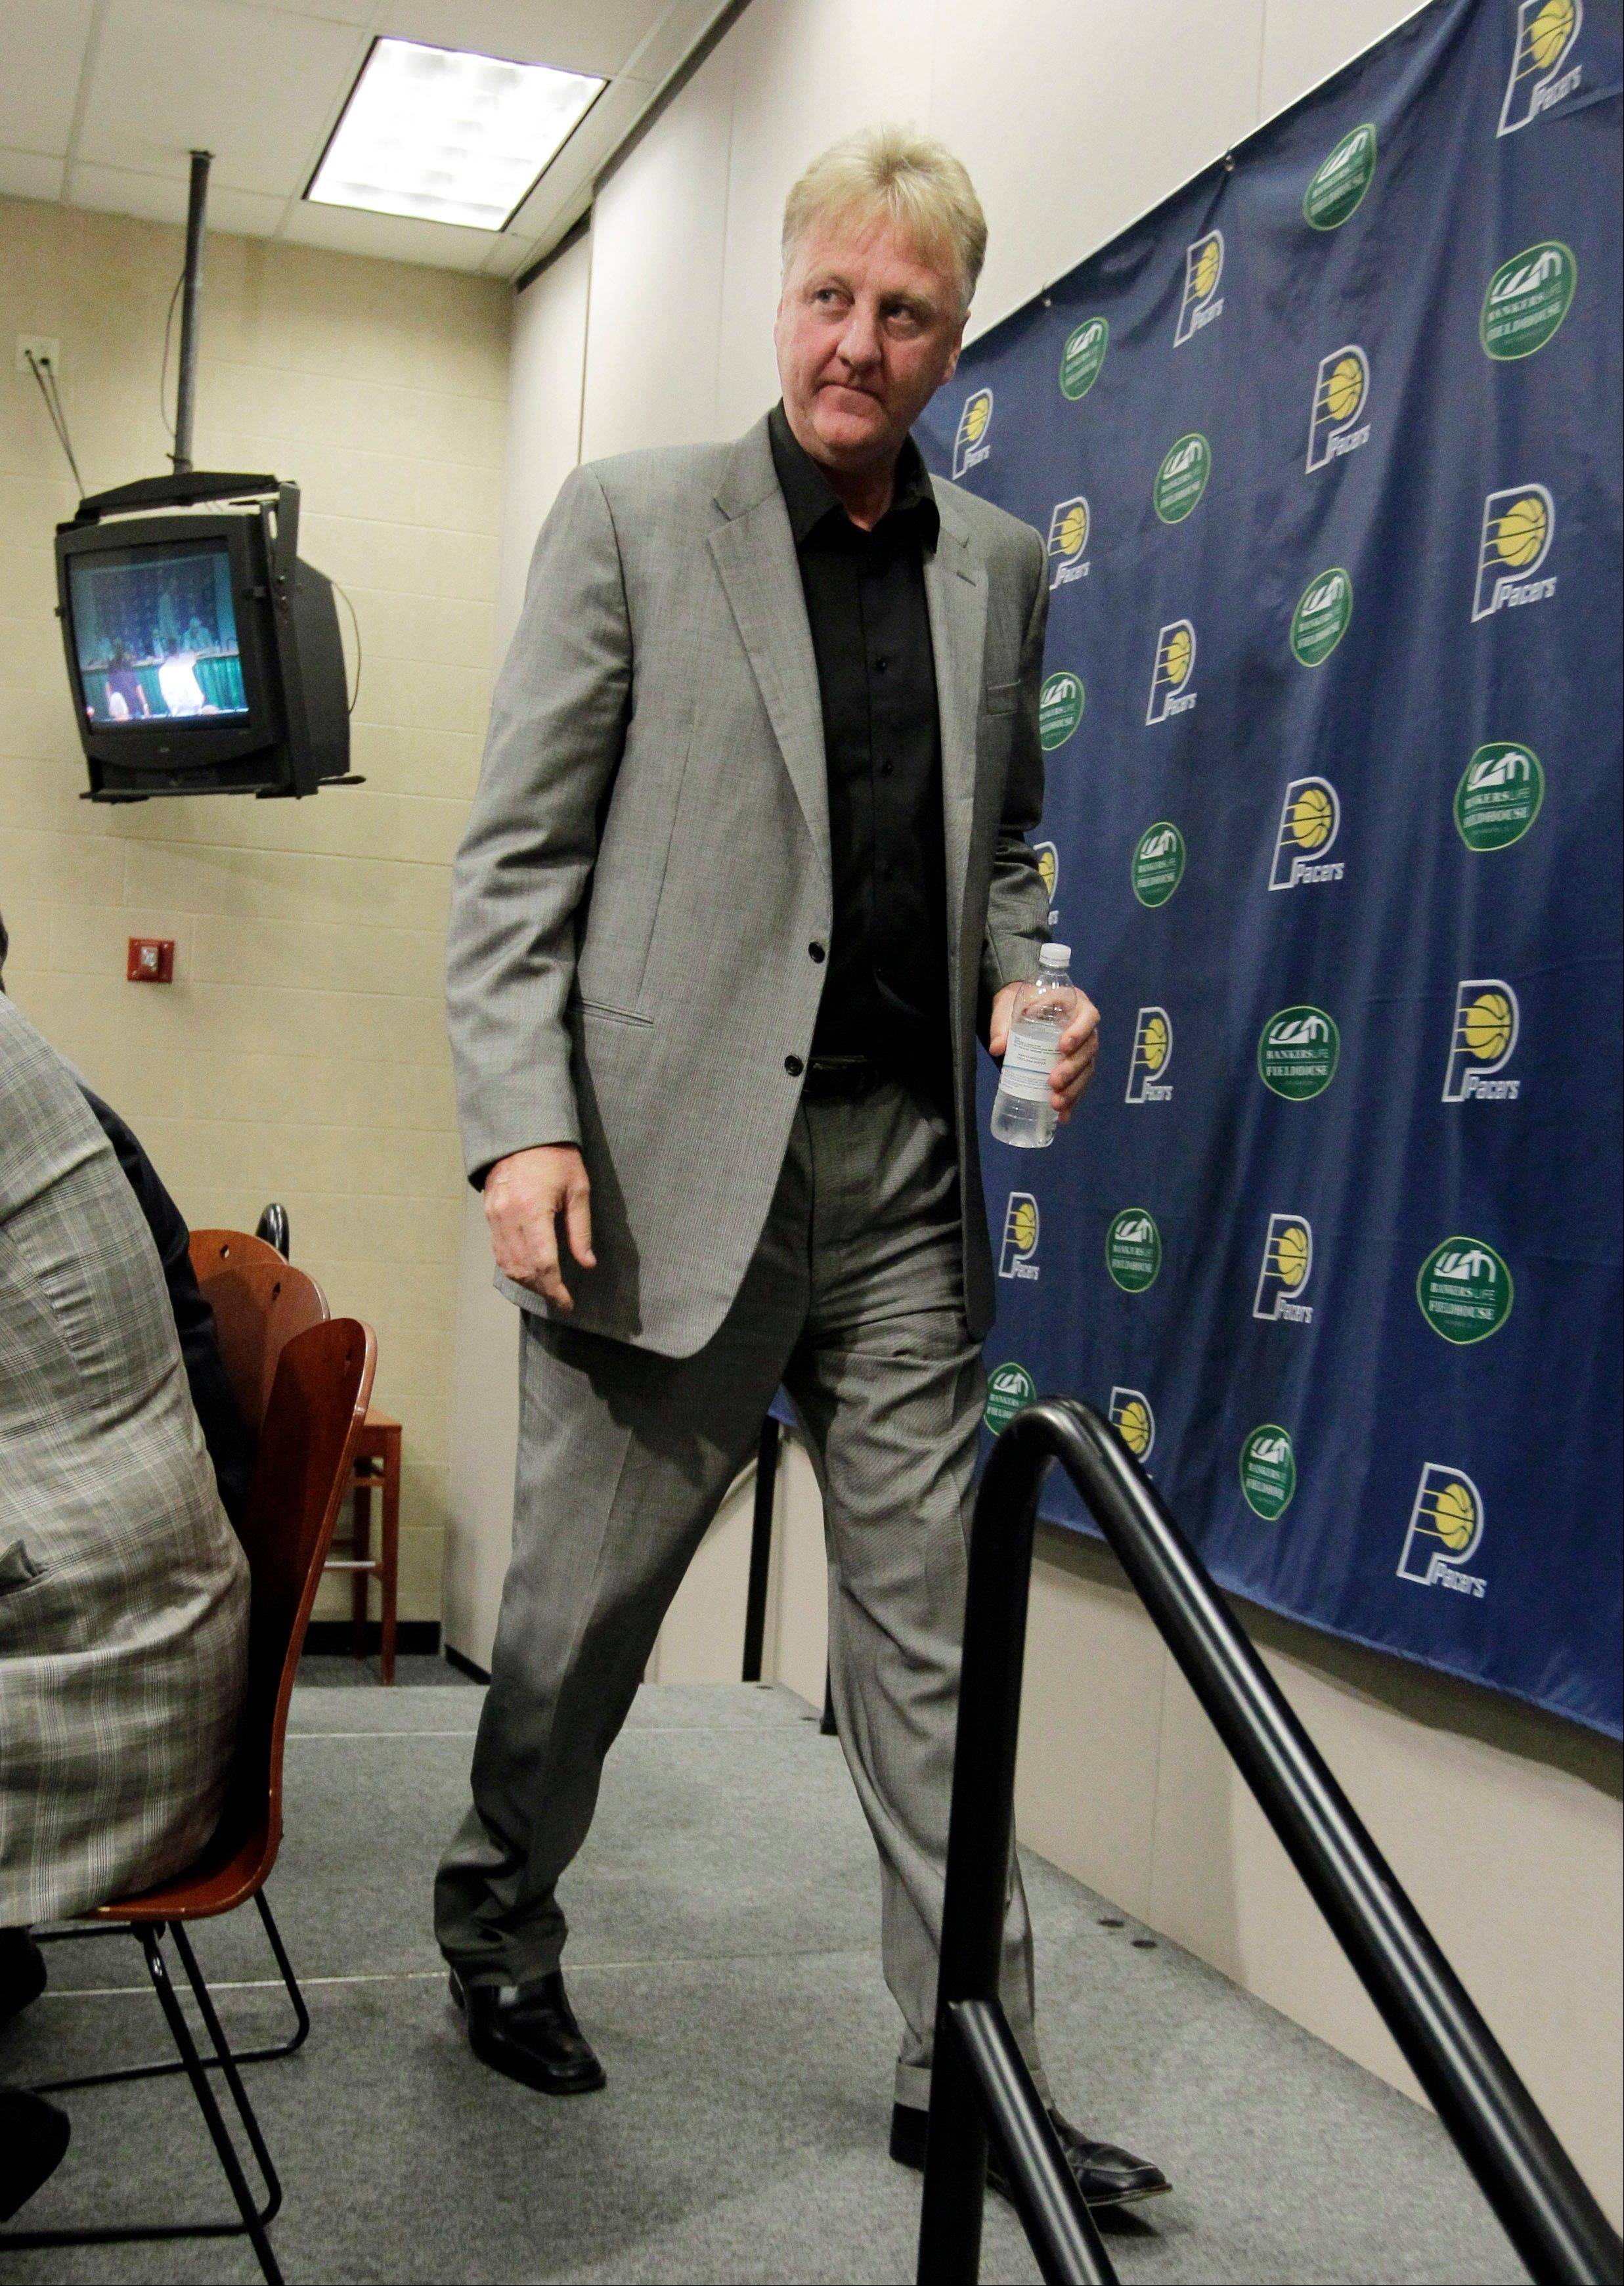 Larry Bird leaves the stage after announcing Wednesday that he is stepping down as president of the Indiana Pacers. Donnie Walsh was named as president and Kevin Pritchard as general manager.